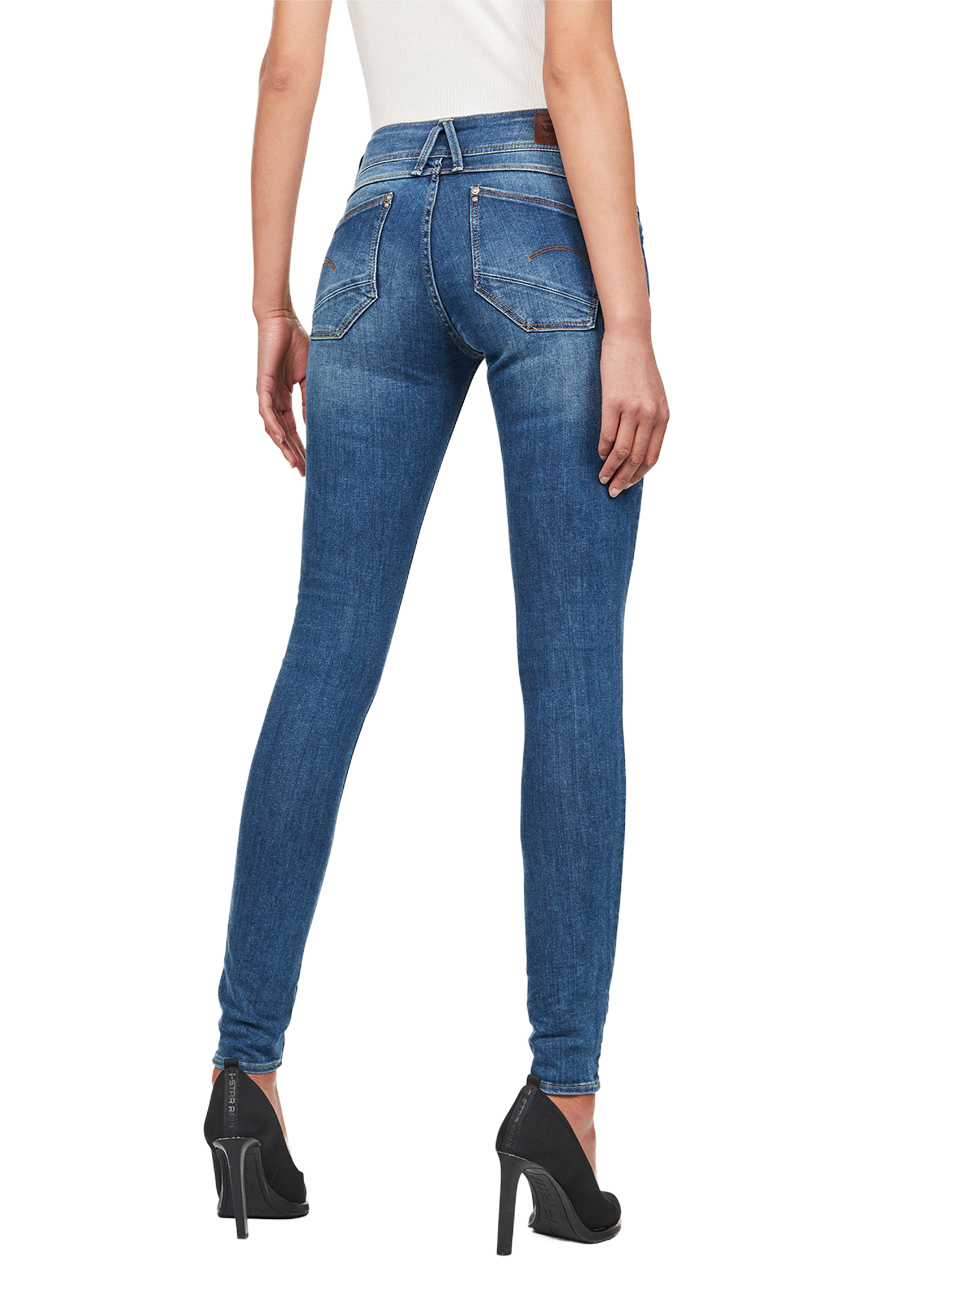 g-star-damen-jeans-lynn-mid-waist-skinny-fit-blau-faded-blue